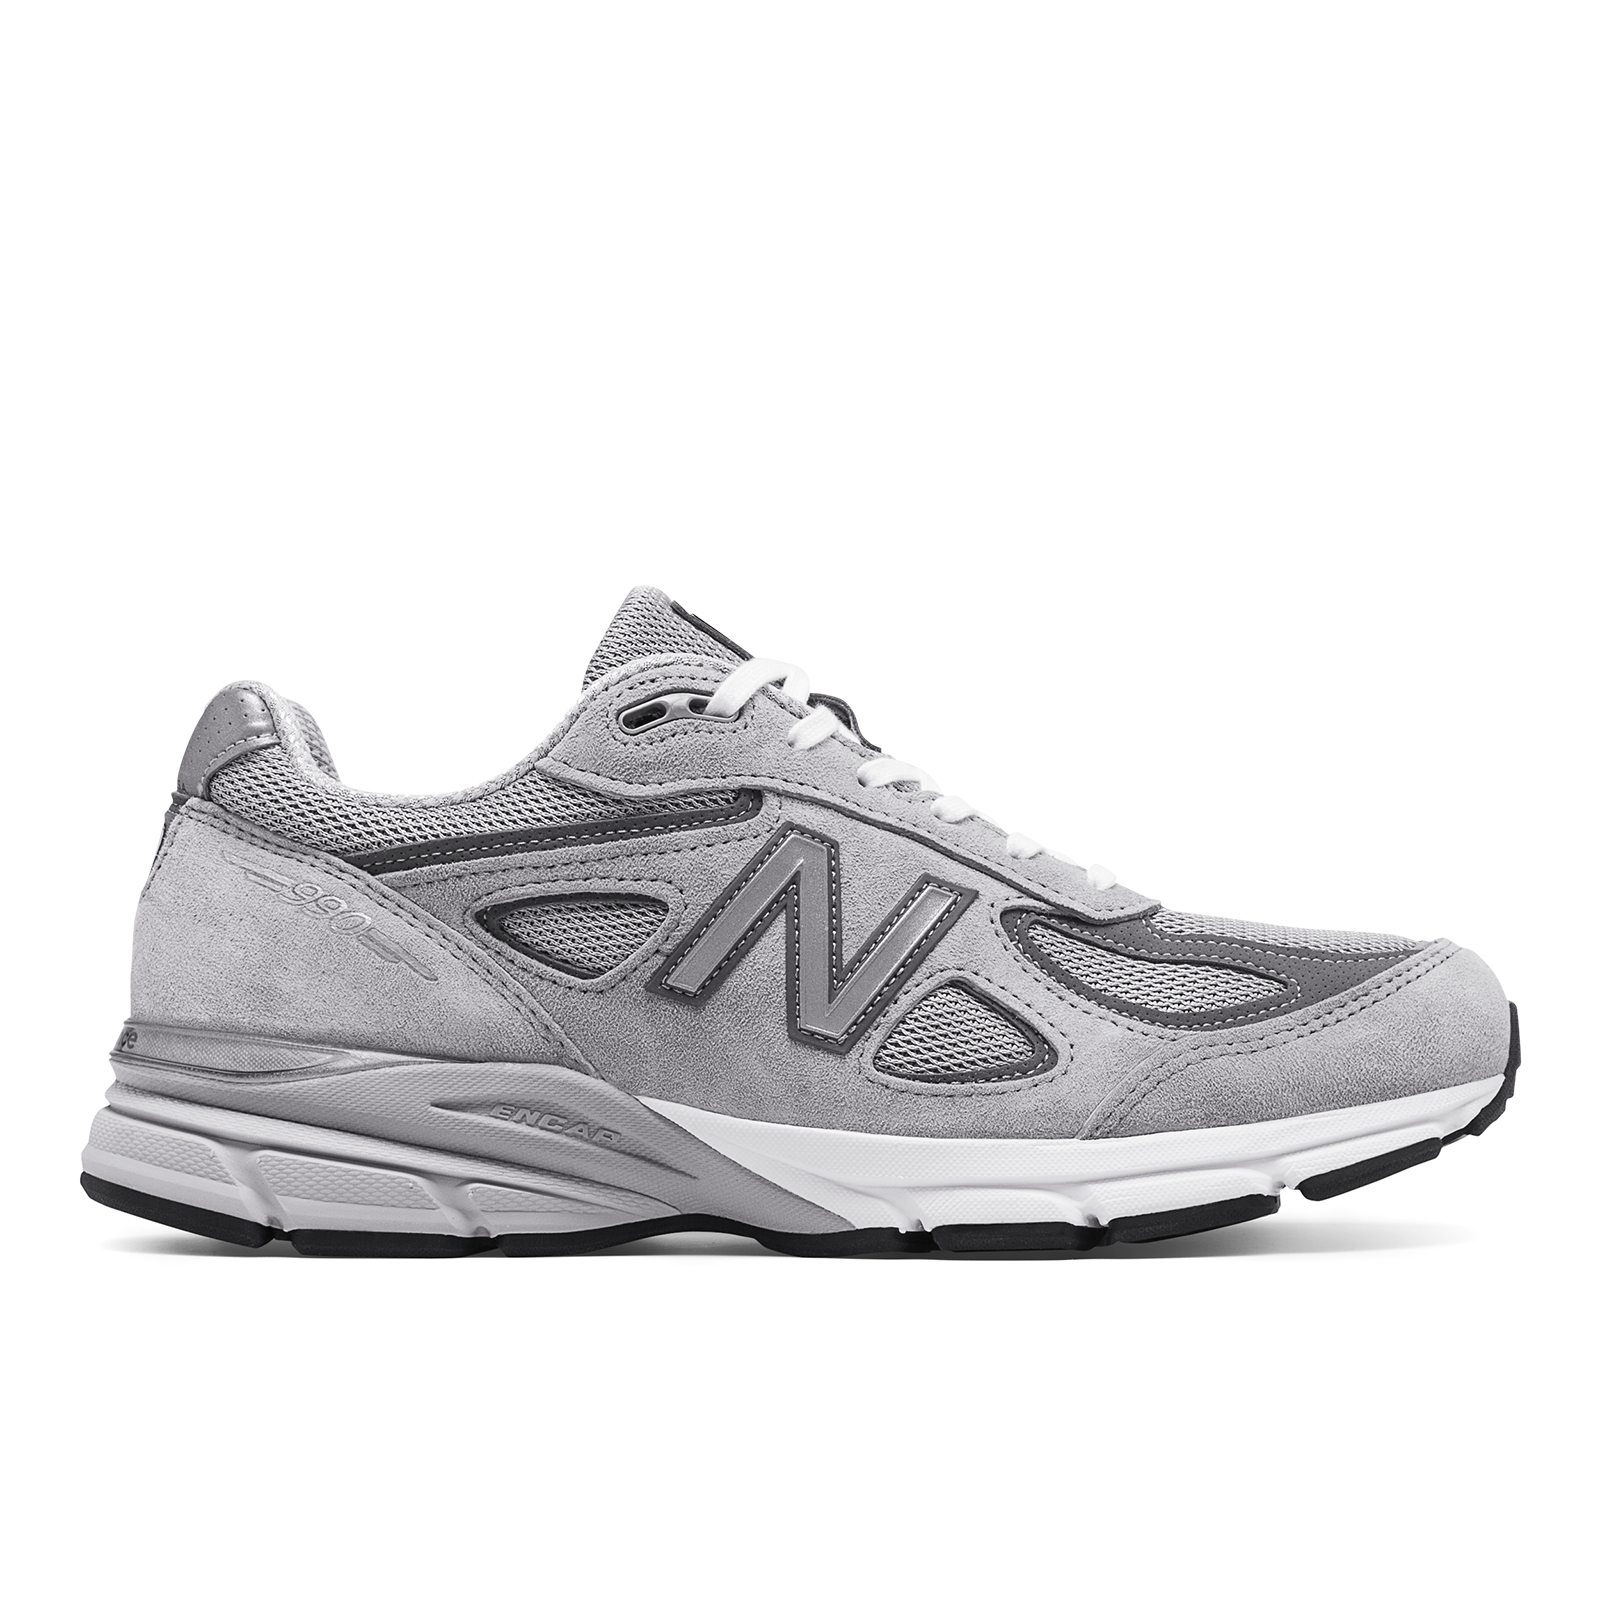 d8580b81c61 right view of mens new balance 990 v4 running shoes in grey castle rock